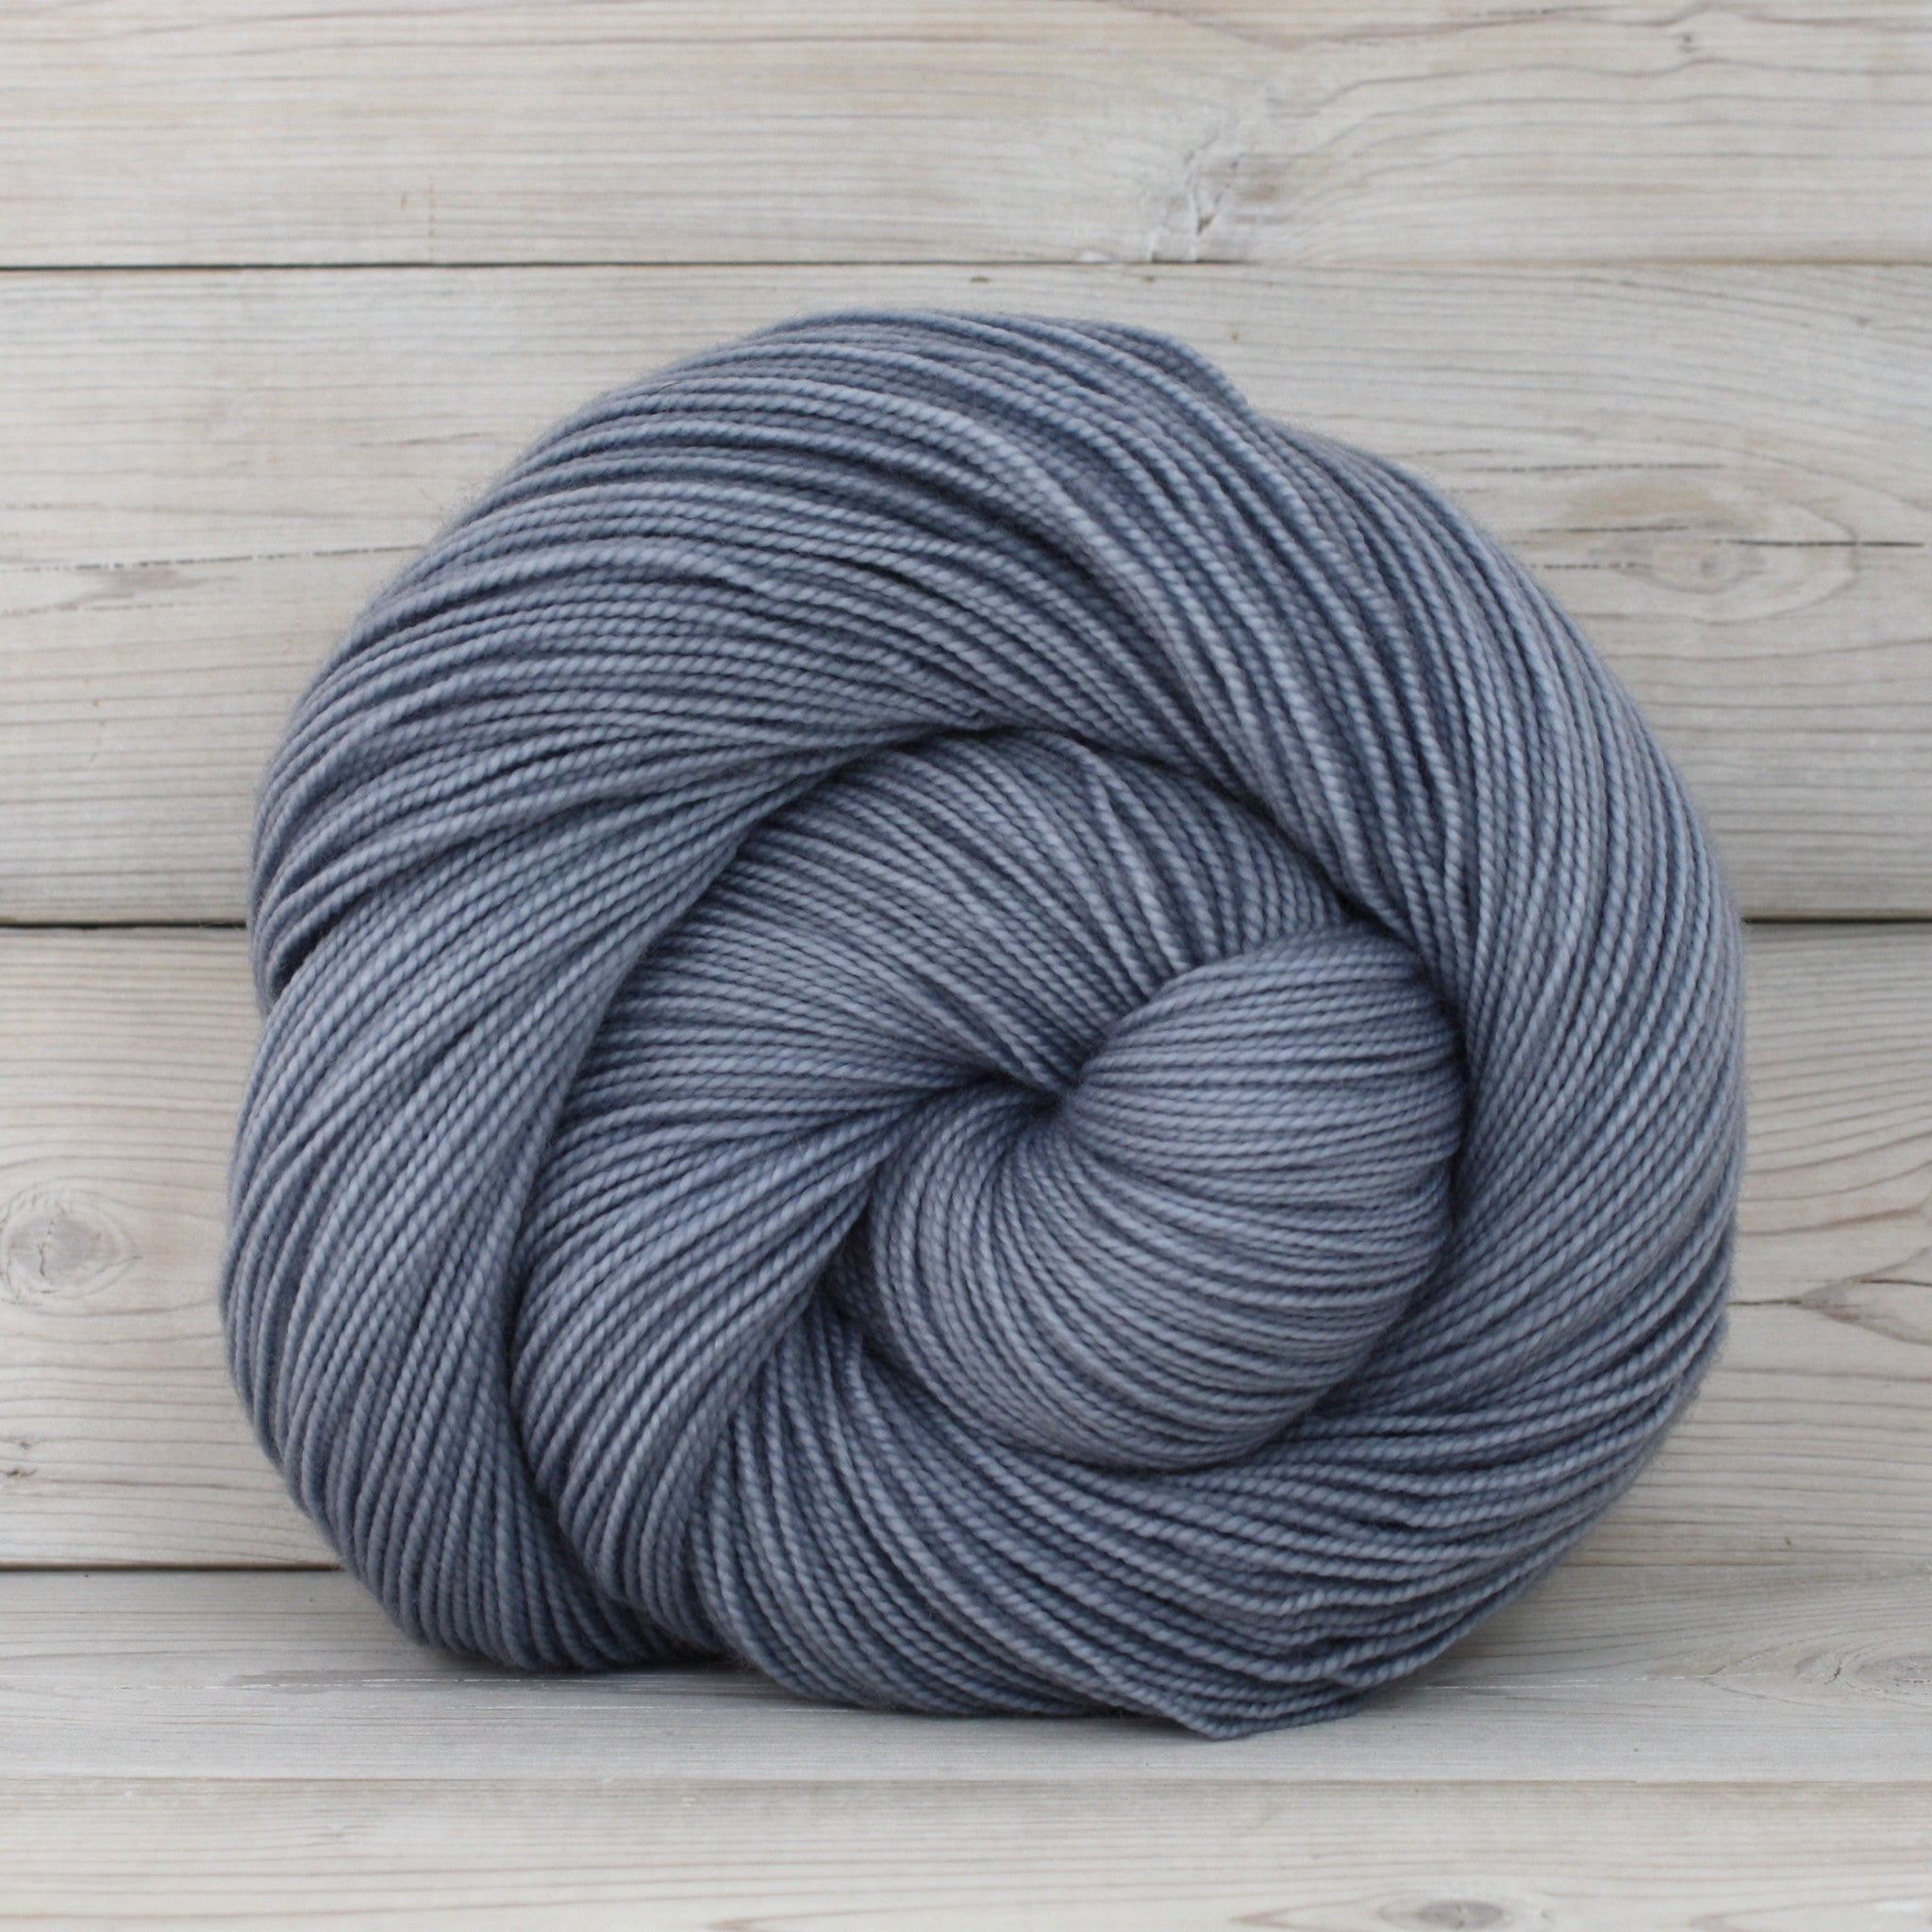 Luna Grey Fiber Arts Celeste Yarn | Colorway: Rain